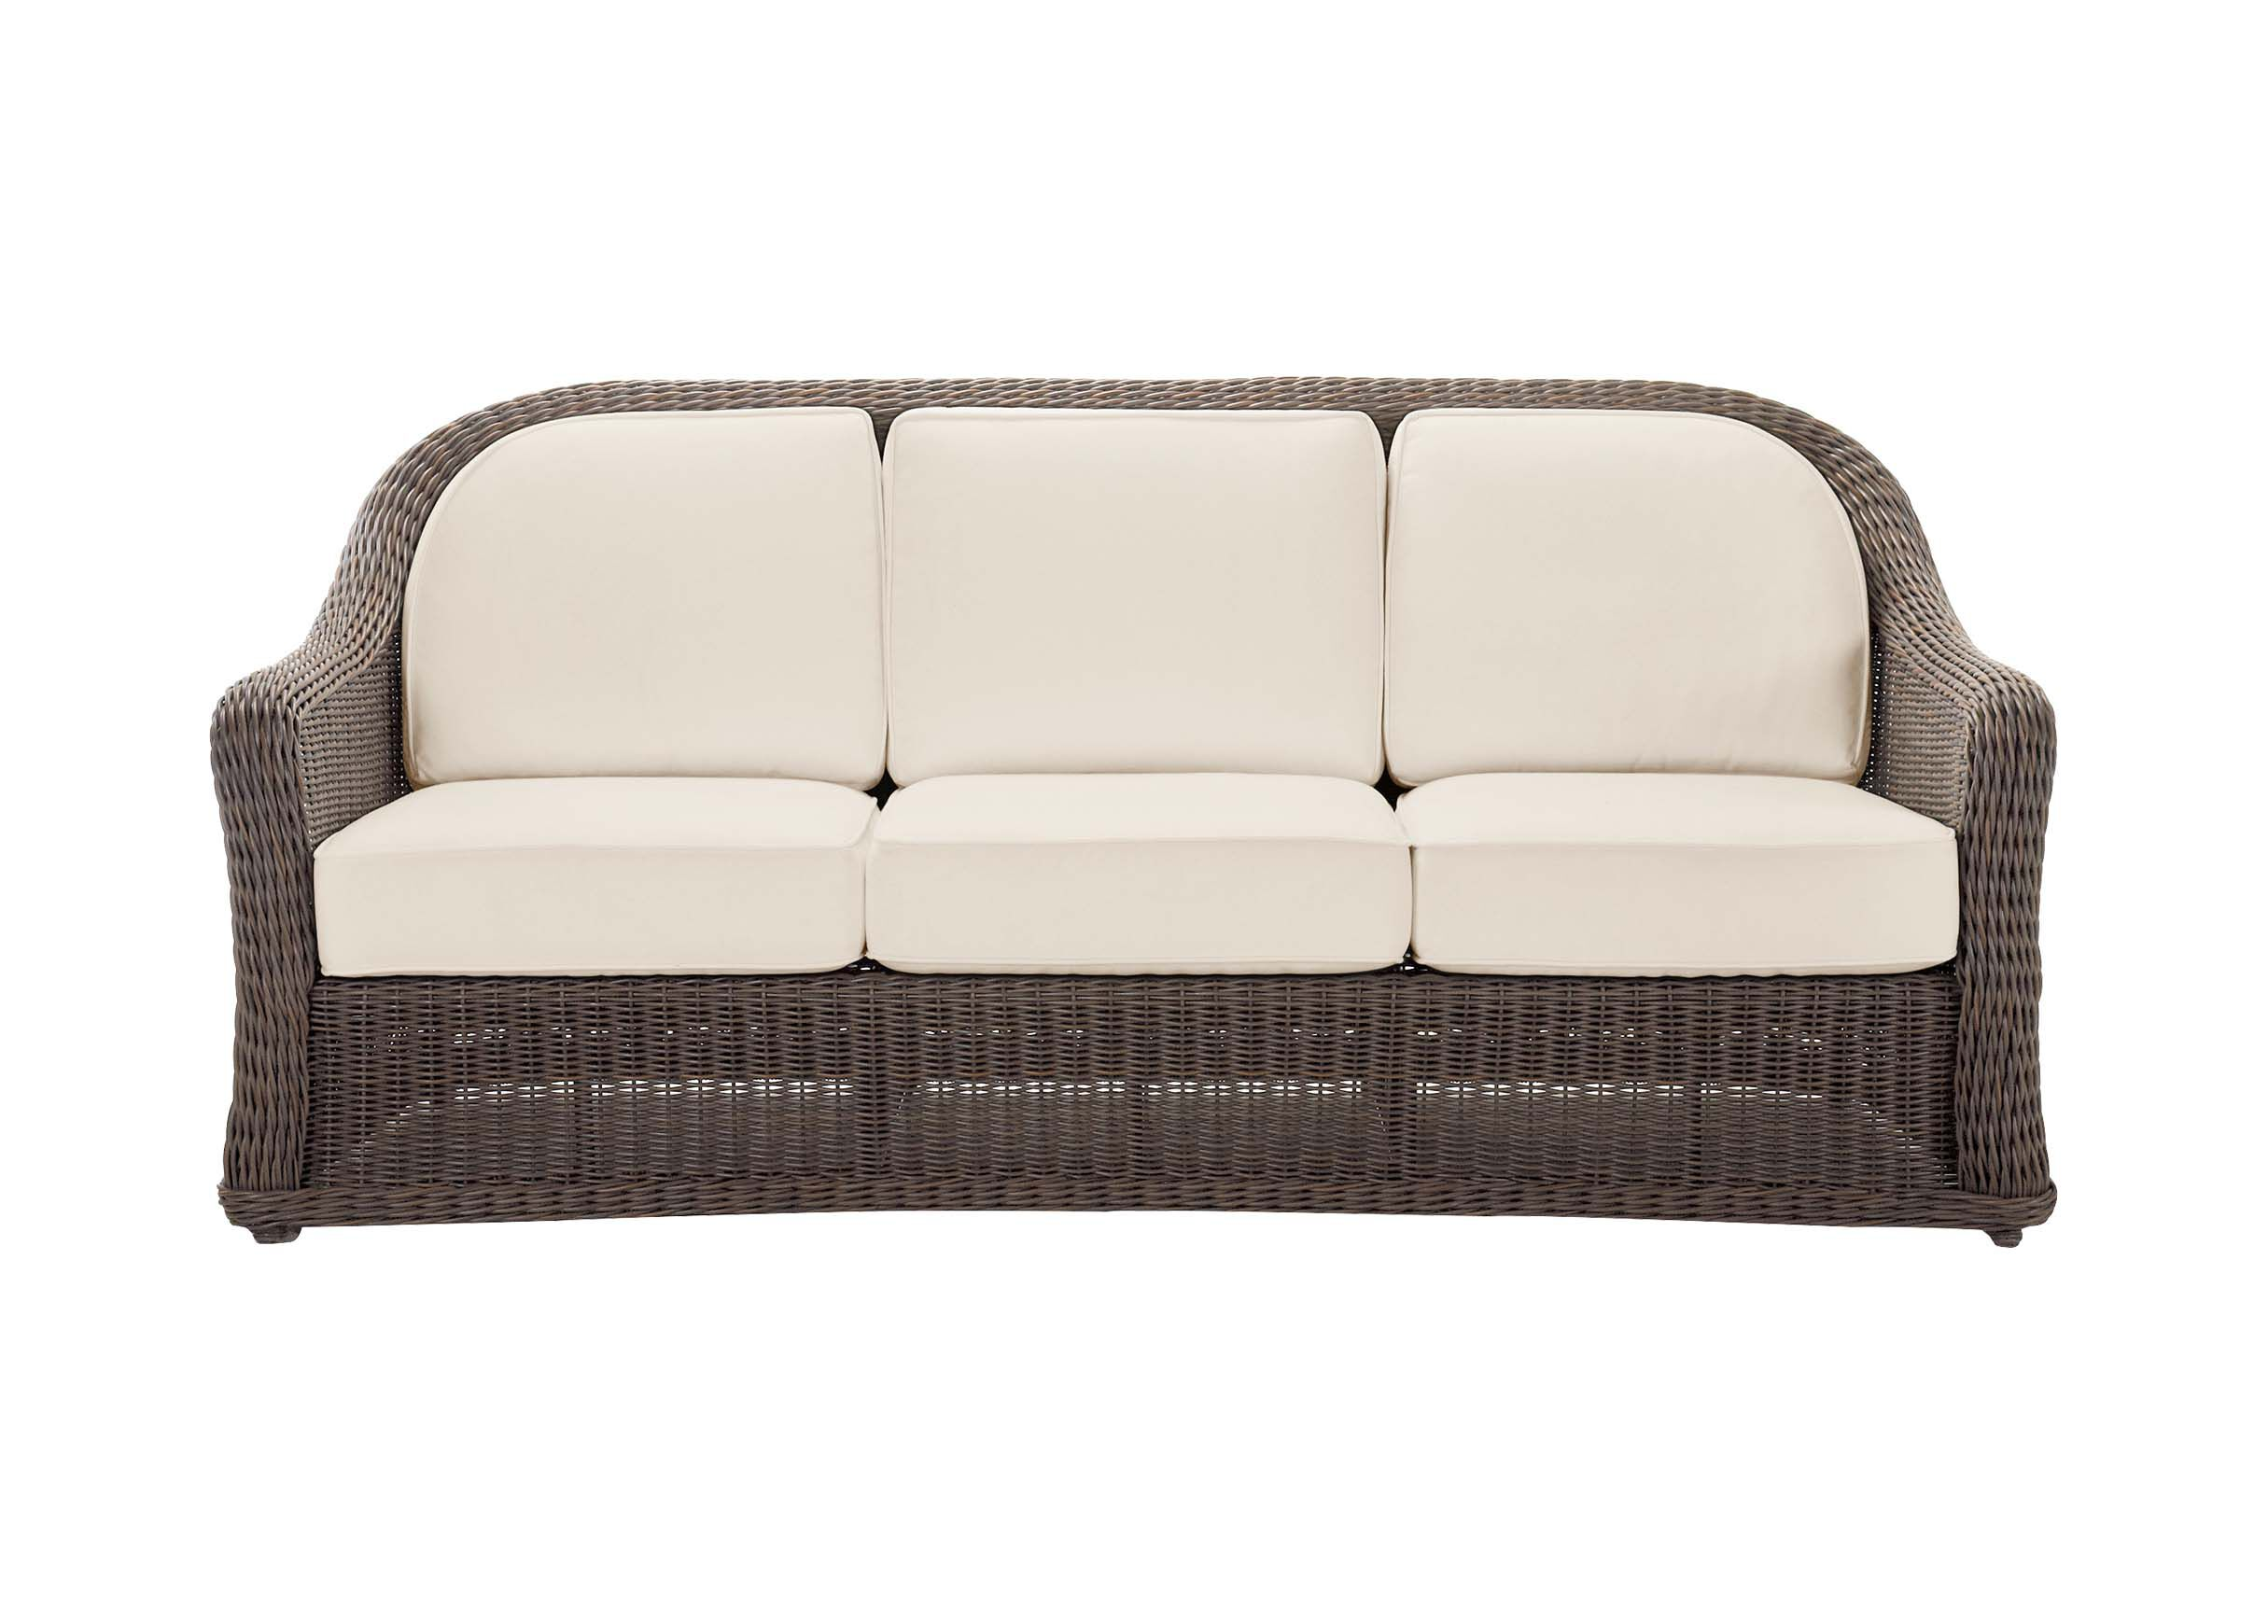 bay sofa country french slipcovers willow collection ethan allen